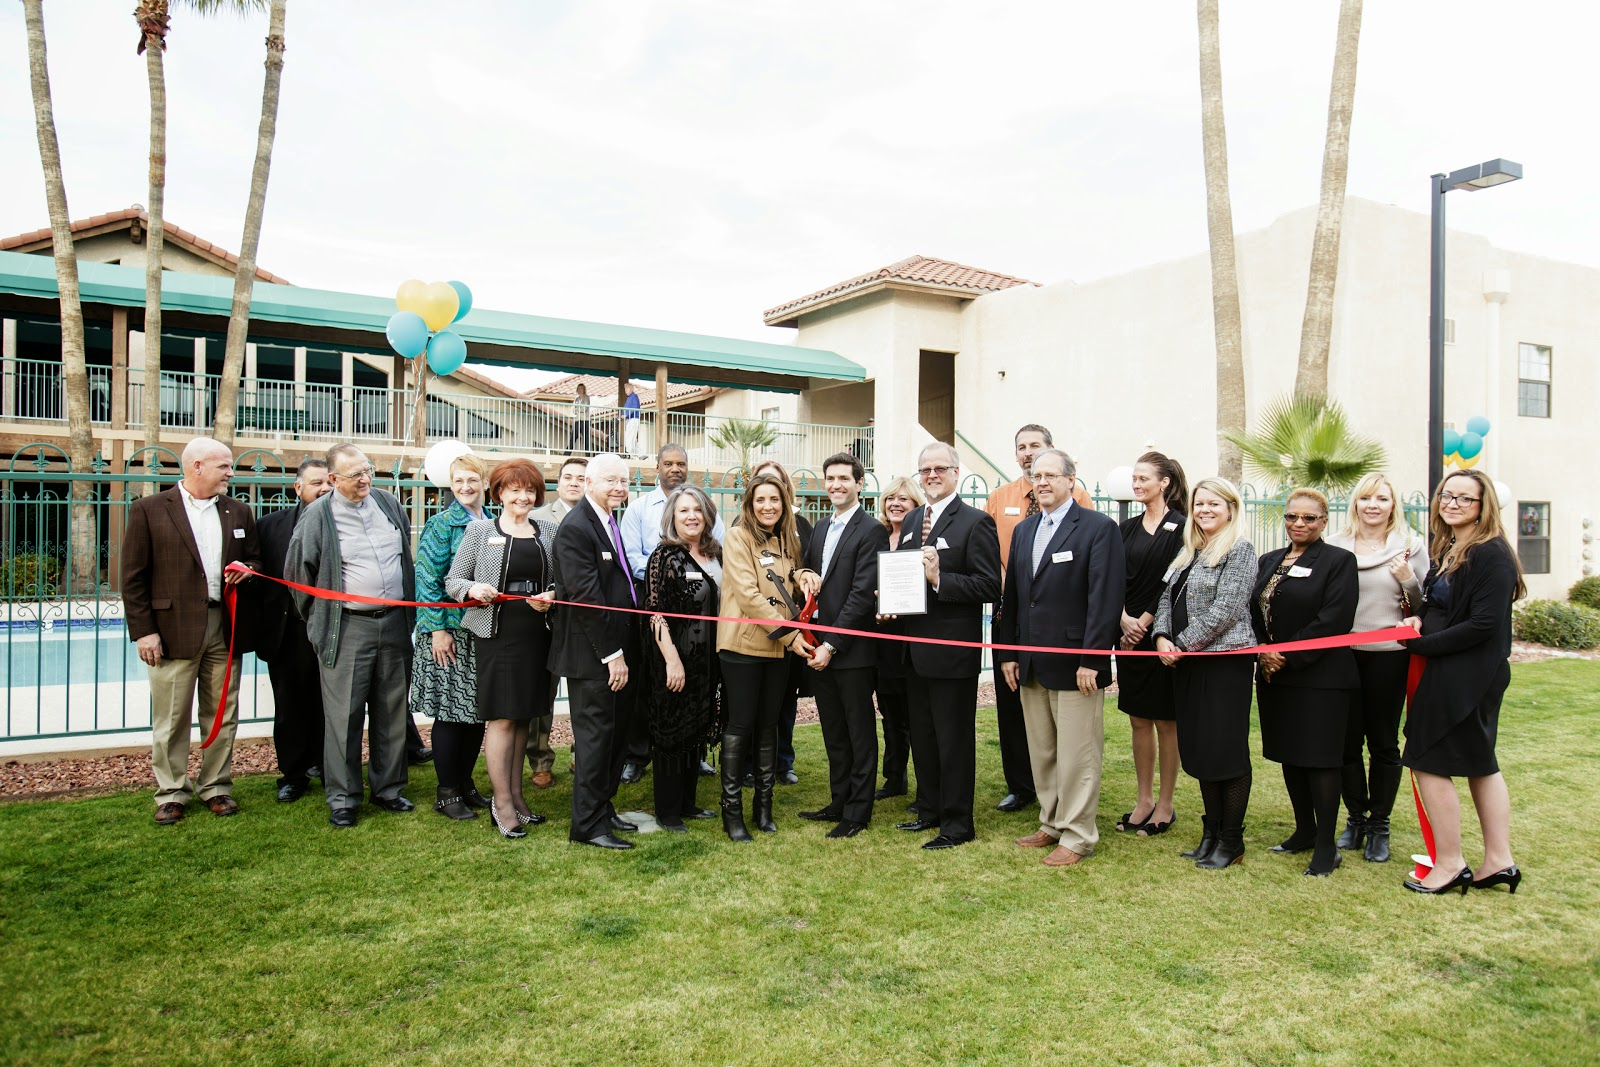 Manor at Midvale - The Tucson Metro Chamber was proud to attend The Manor at Midvale's Grand Re-Opening and Ribbon Cutting ceremony on January 23rd. The Manor at Midvale now offers residents a brand new movie theater, upgraded ice cream parlor, stunning landscape, and a beautifully remolded pool, spa and fitness center. Call today to schedule a tour which includes one of their chef prepared meals.520-834-8385.